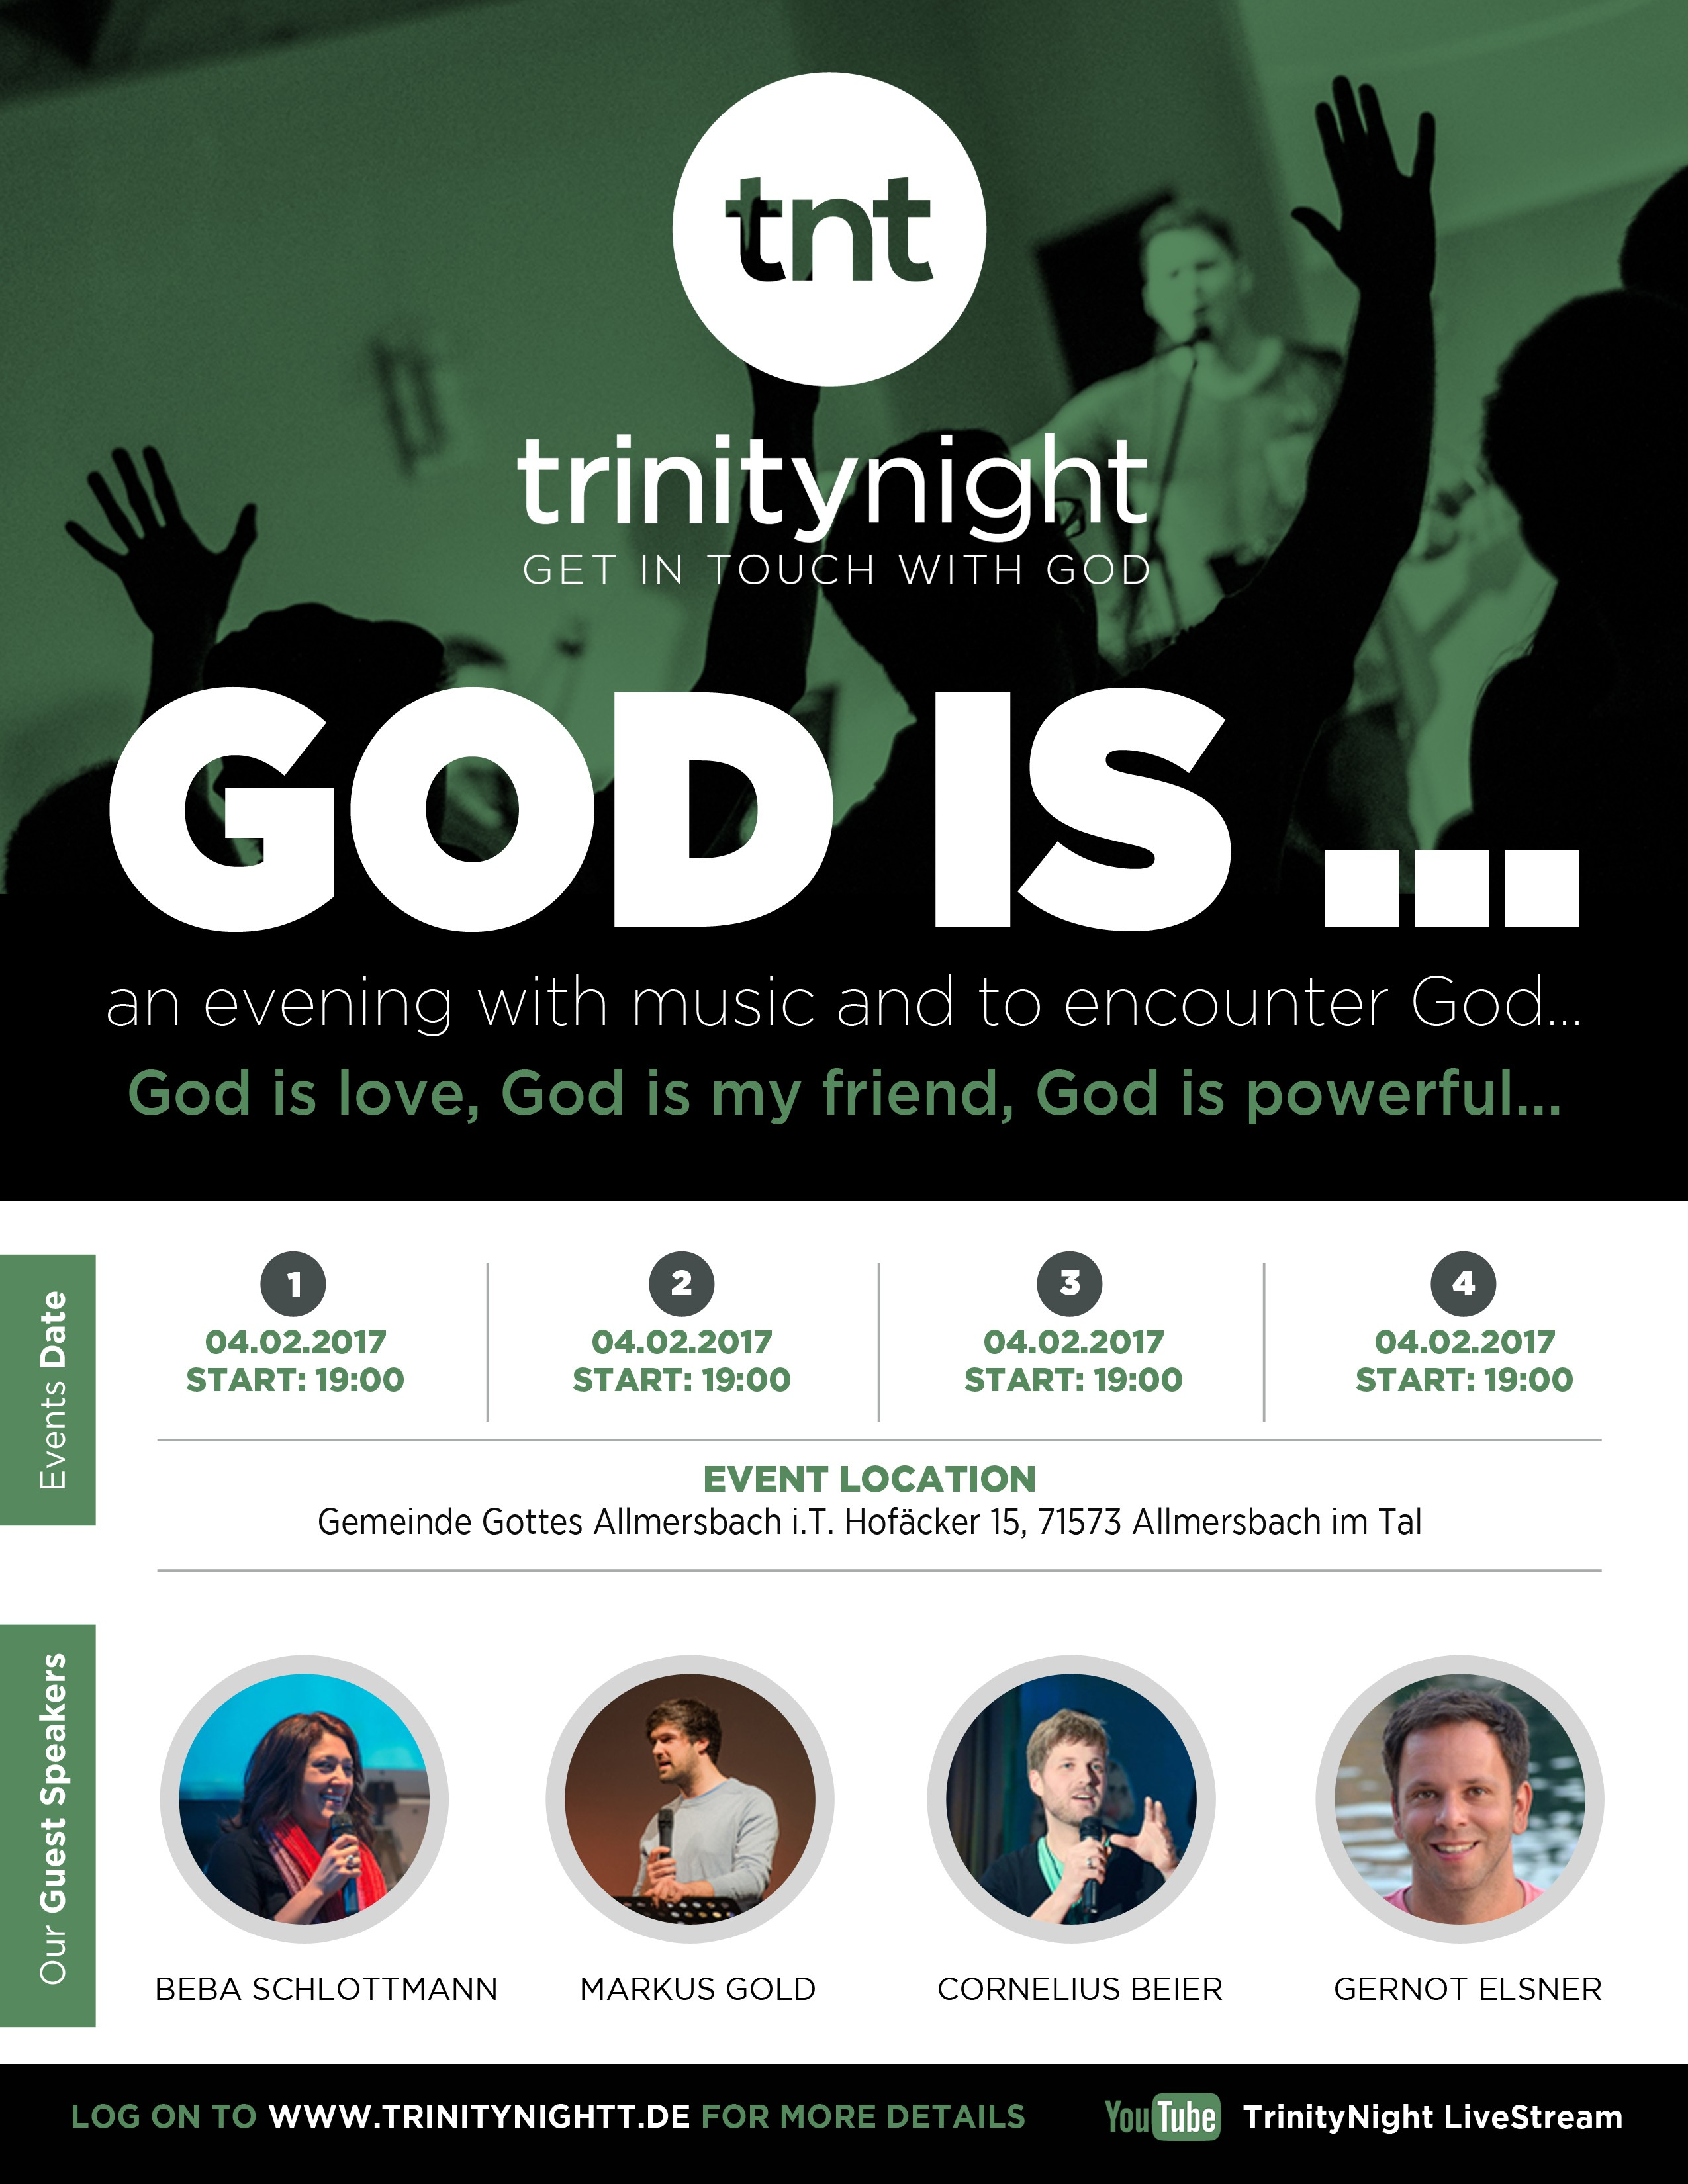 Create a flyer for a youth church event in 2017